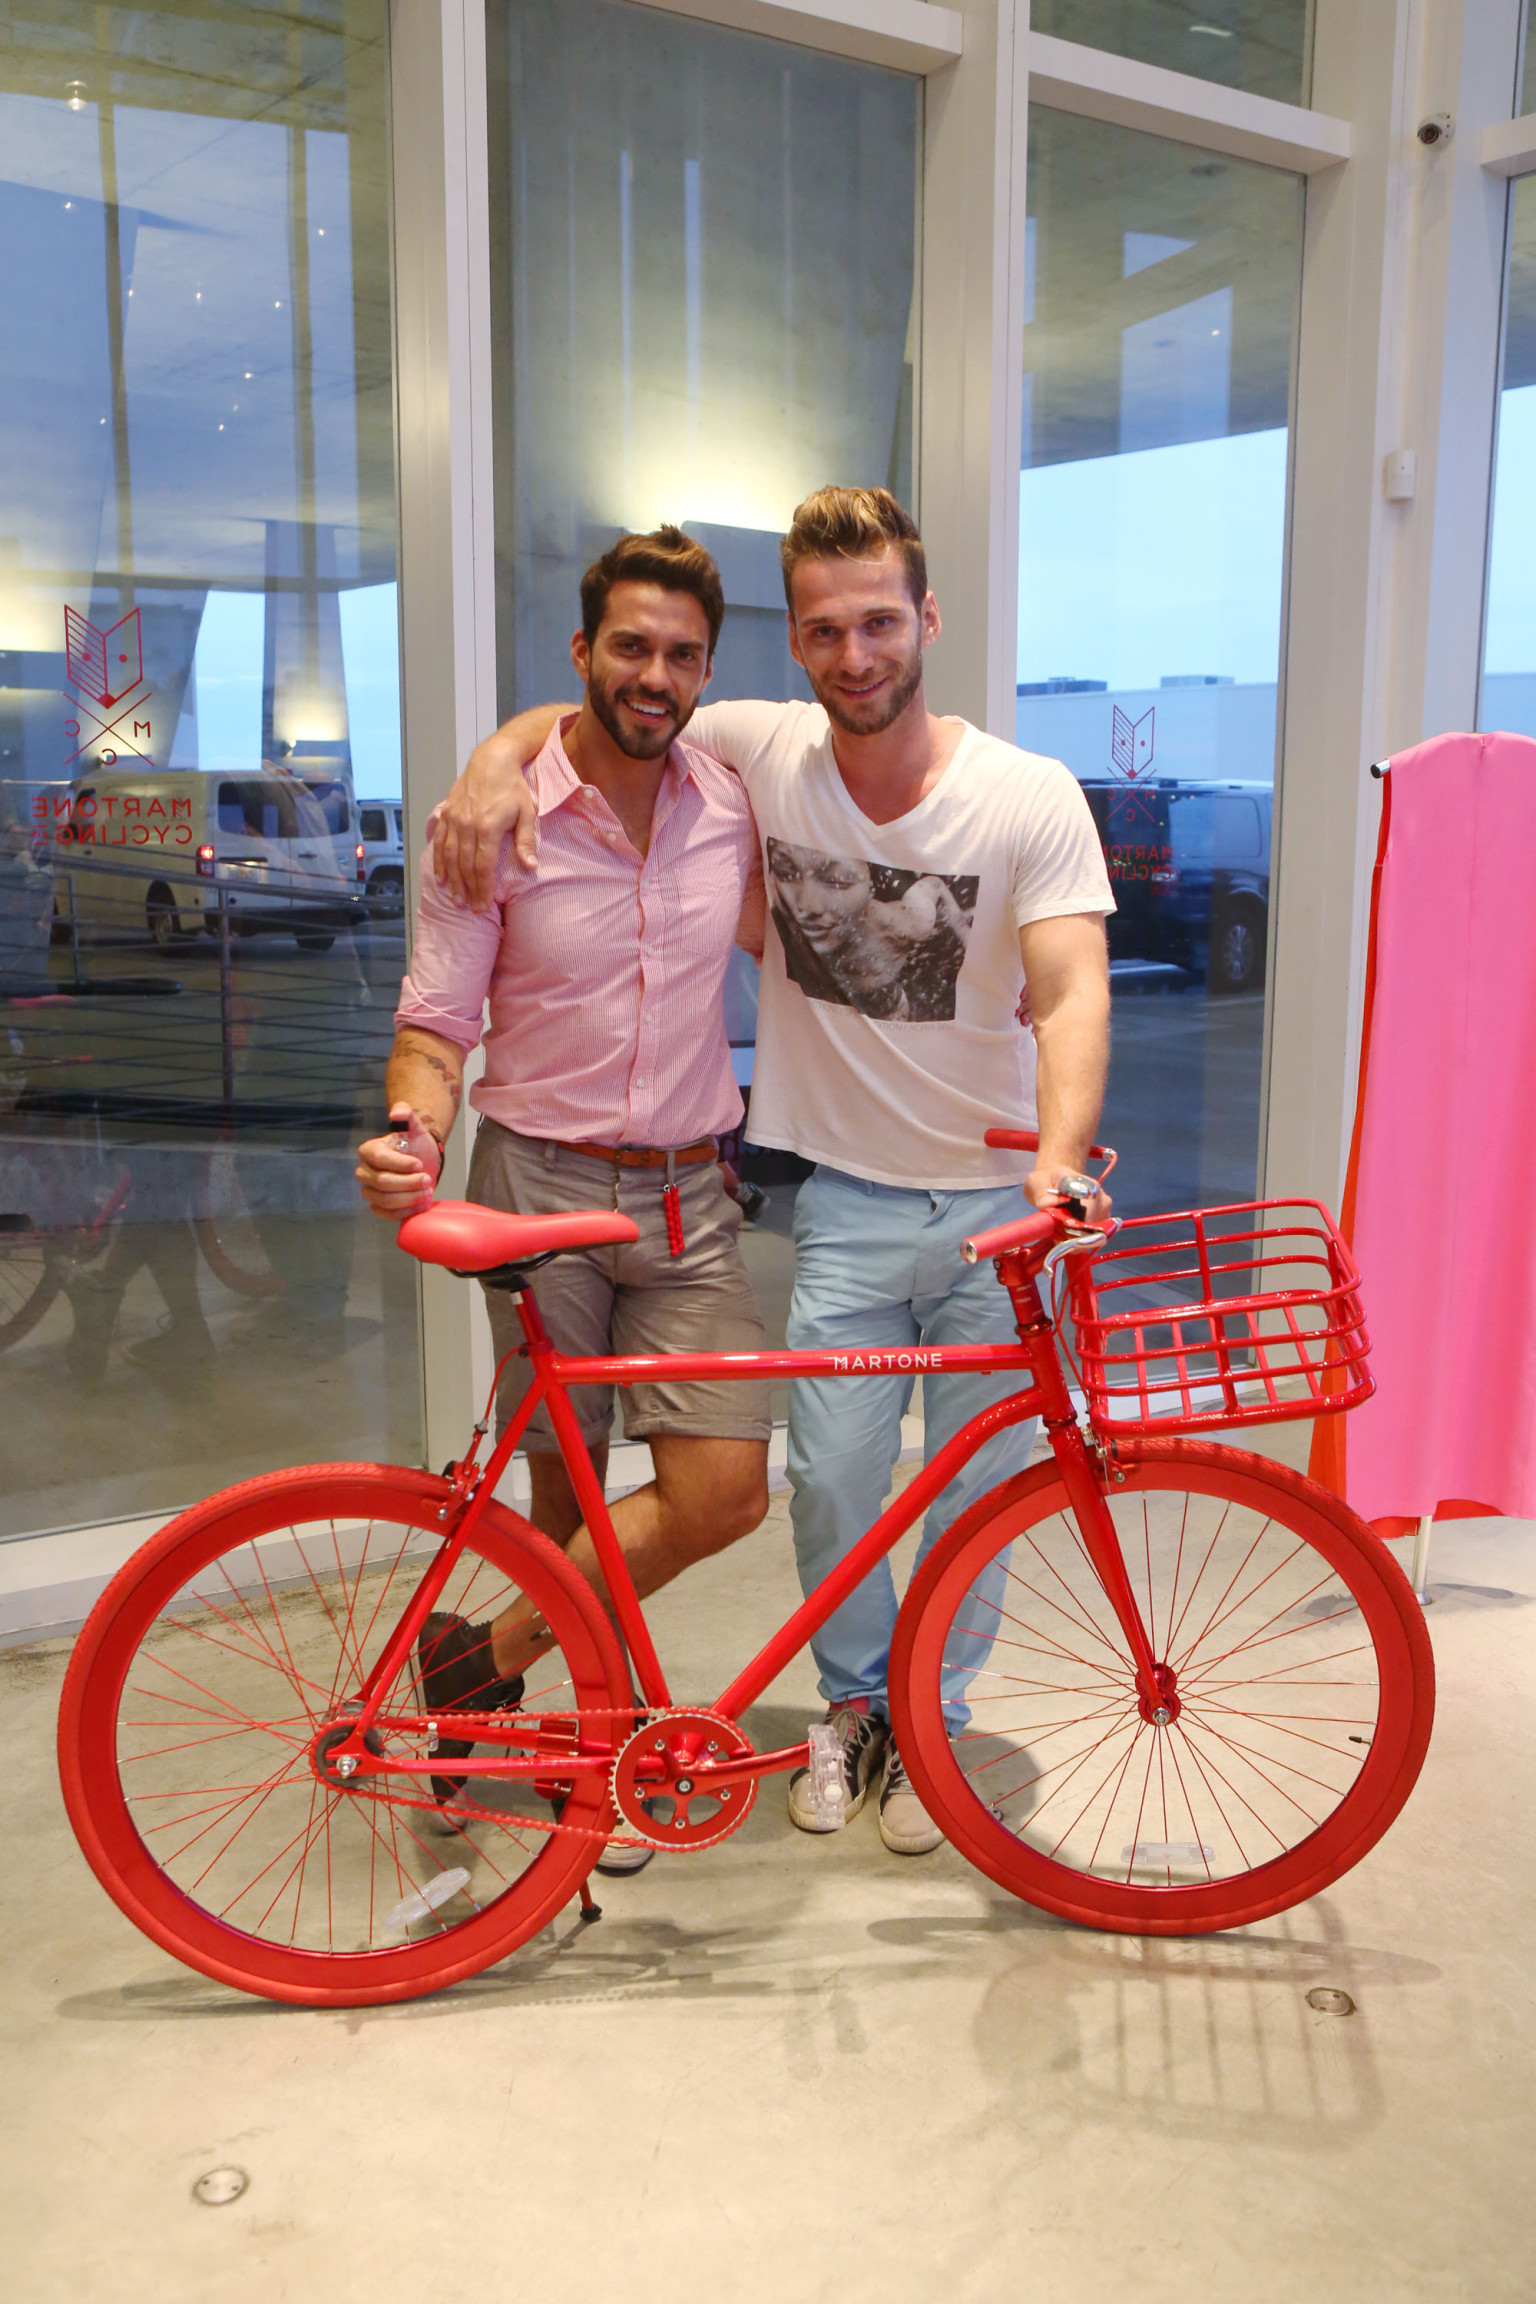 Straight Line Performance >> Martone Cycling Co., Coolest Bicycles Ever, Now Available ...